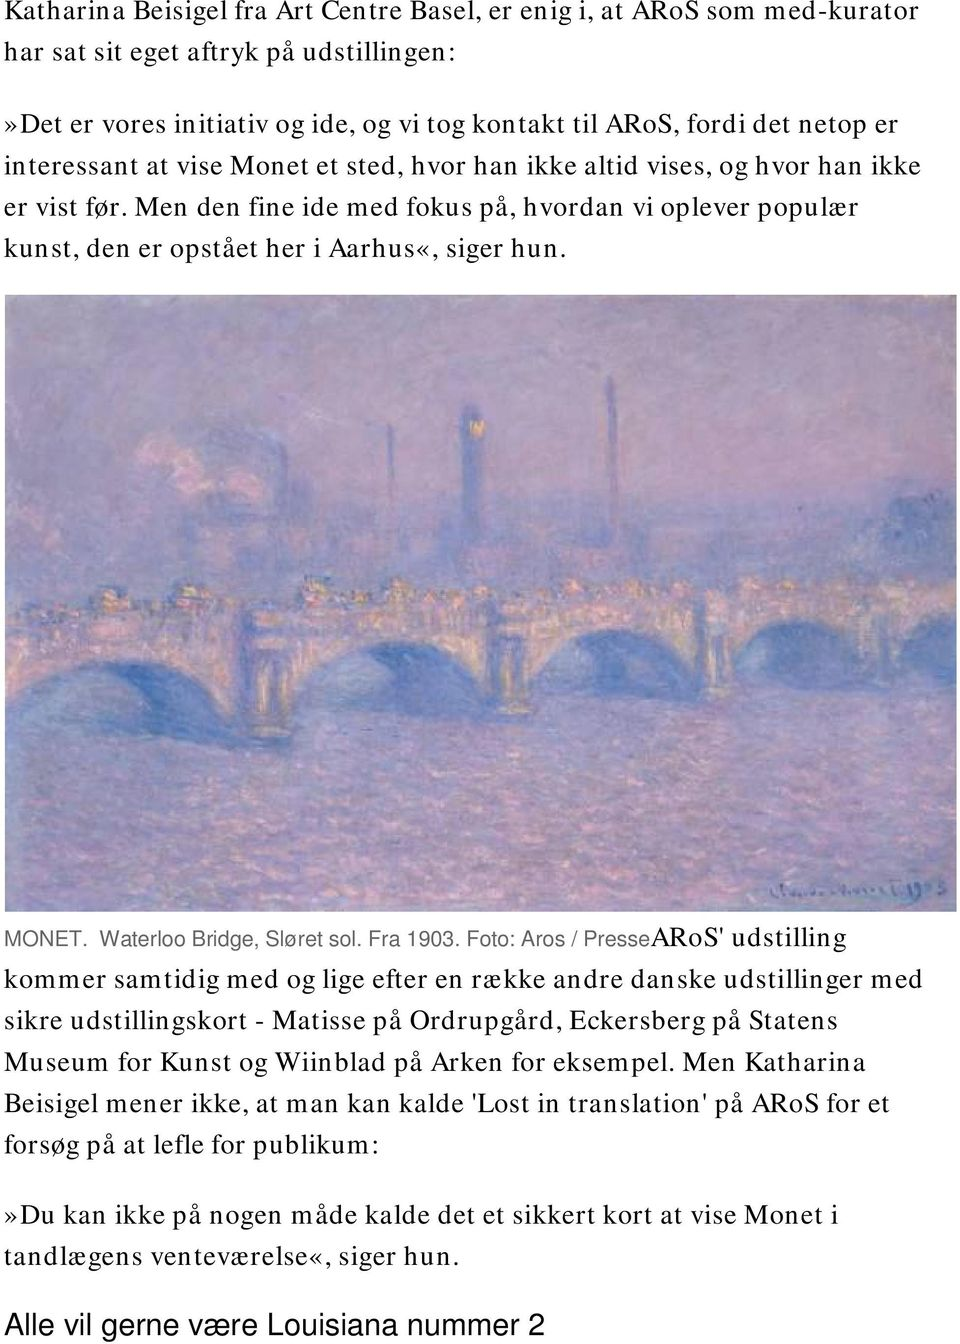 MONET. Waterloo Bridge, Sløret sol. Fra 1903.